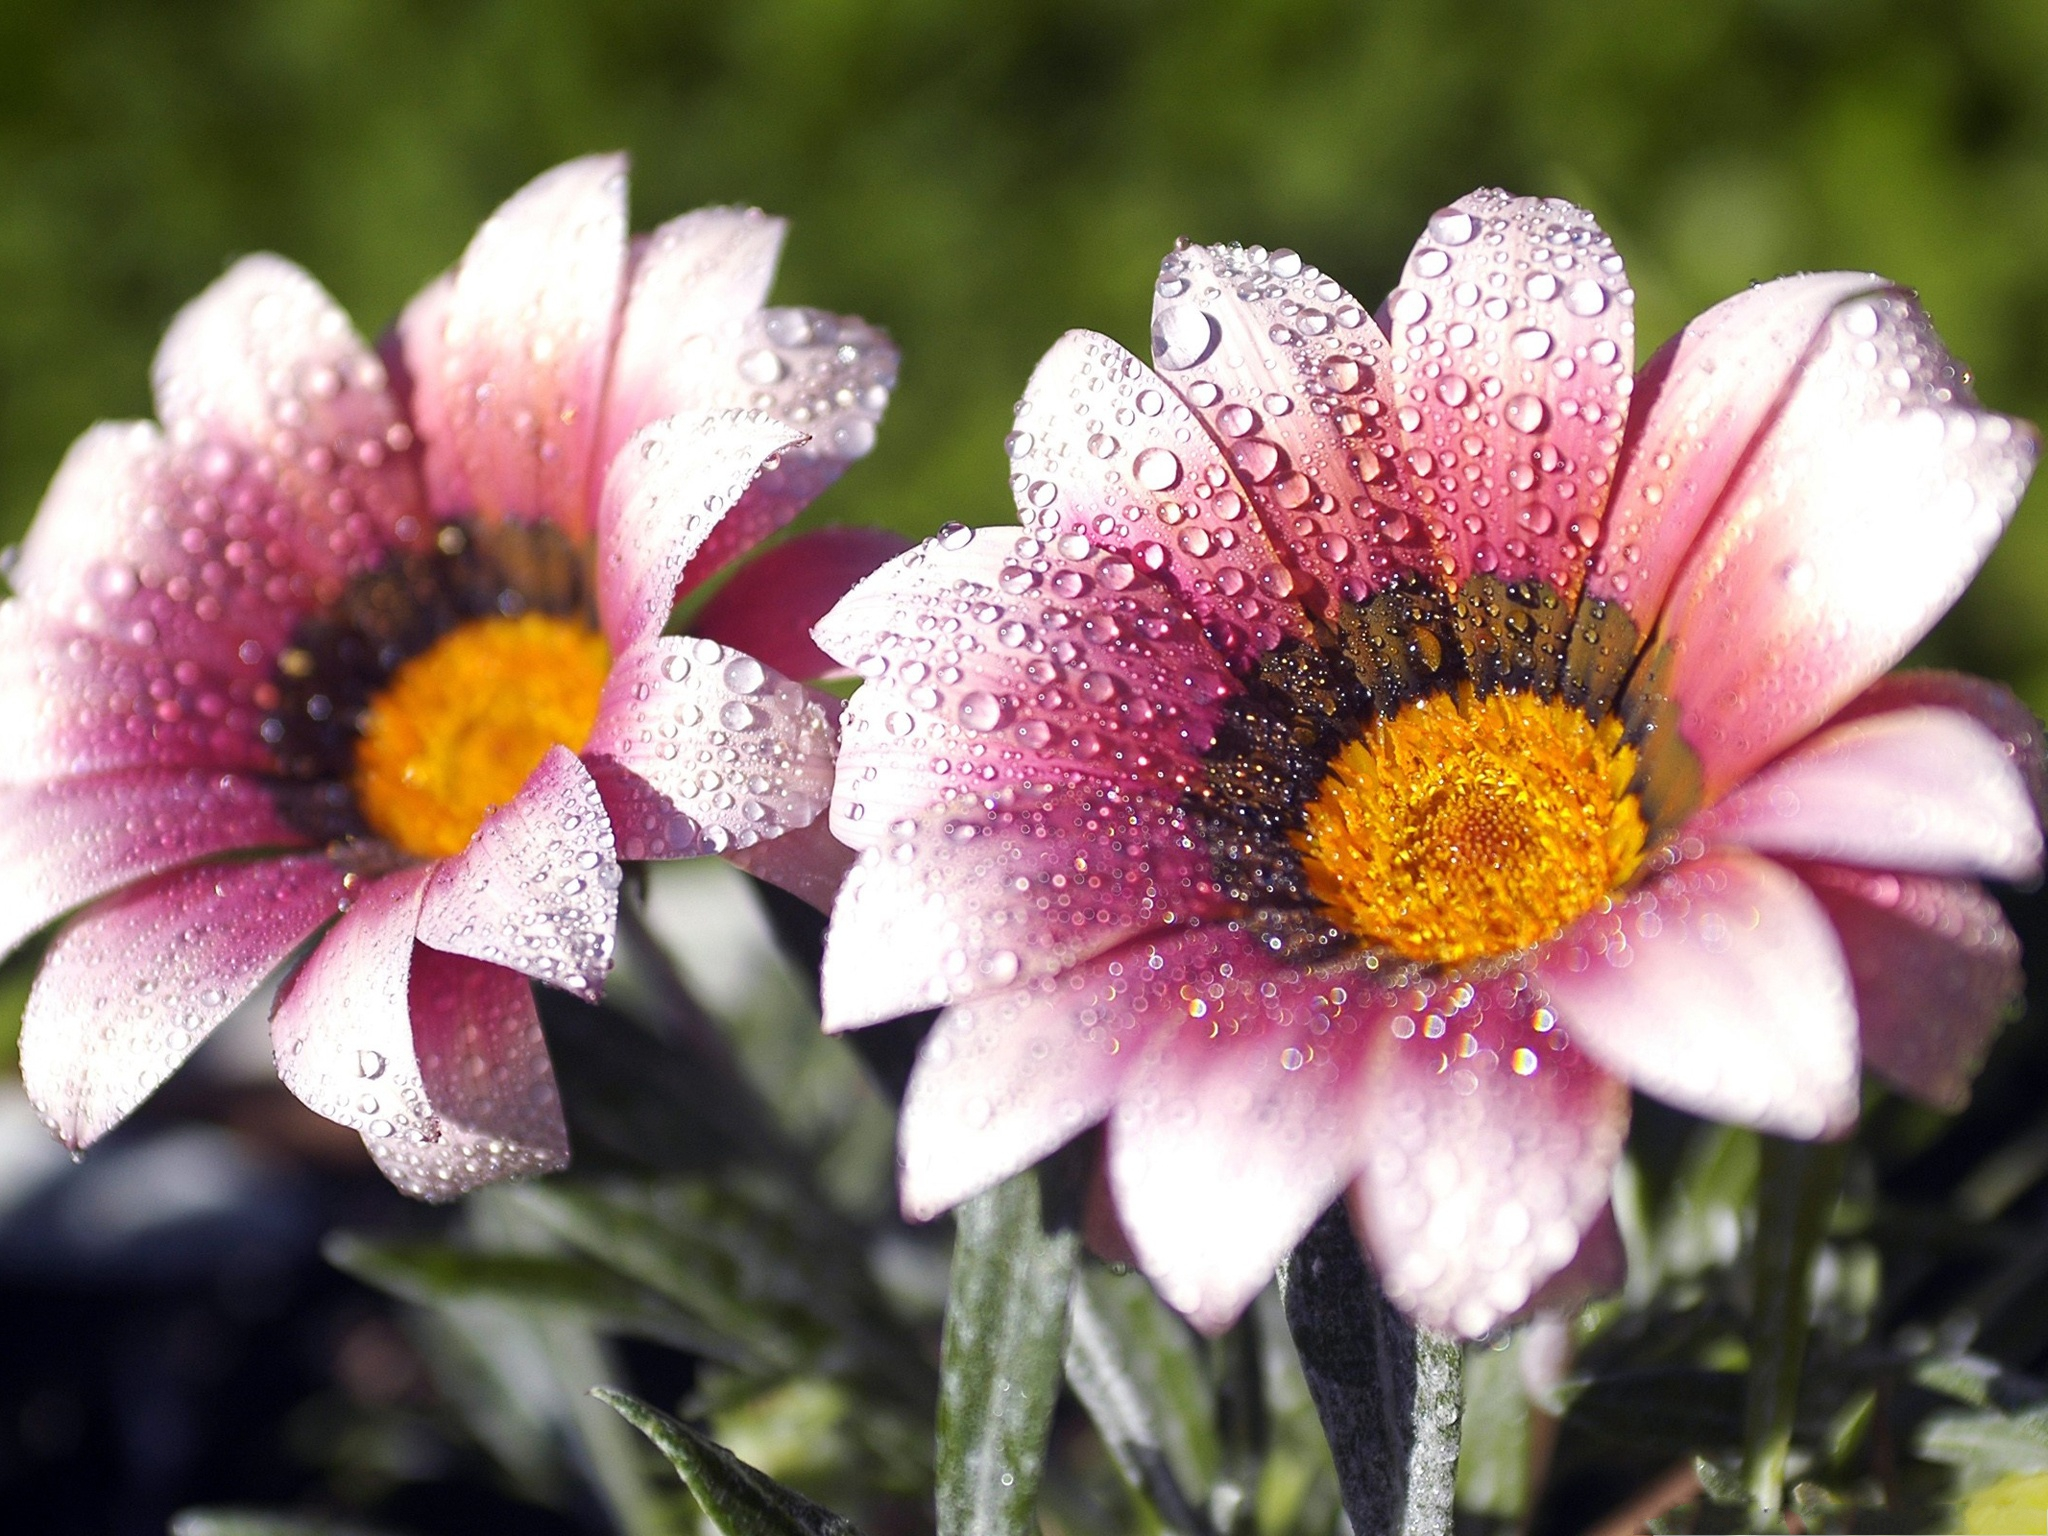 Two flowers picture beautiful flower with rain drops great scenery two flowers picture beautiful flower with rain drops great scenery 2048x1536 free wallpaper download 2048x1536 free wallpaper download free wallpaper izmirmasajfo